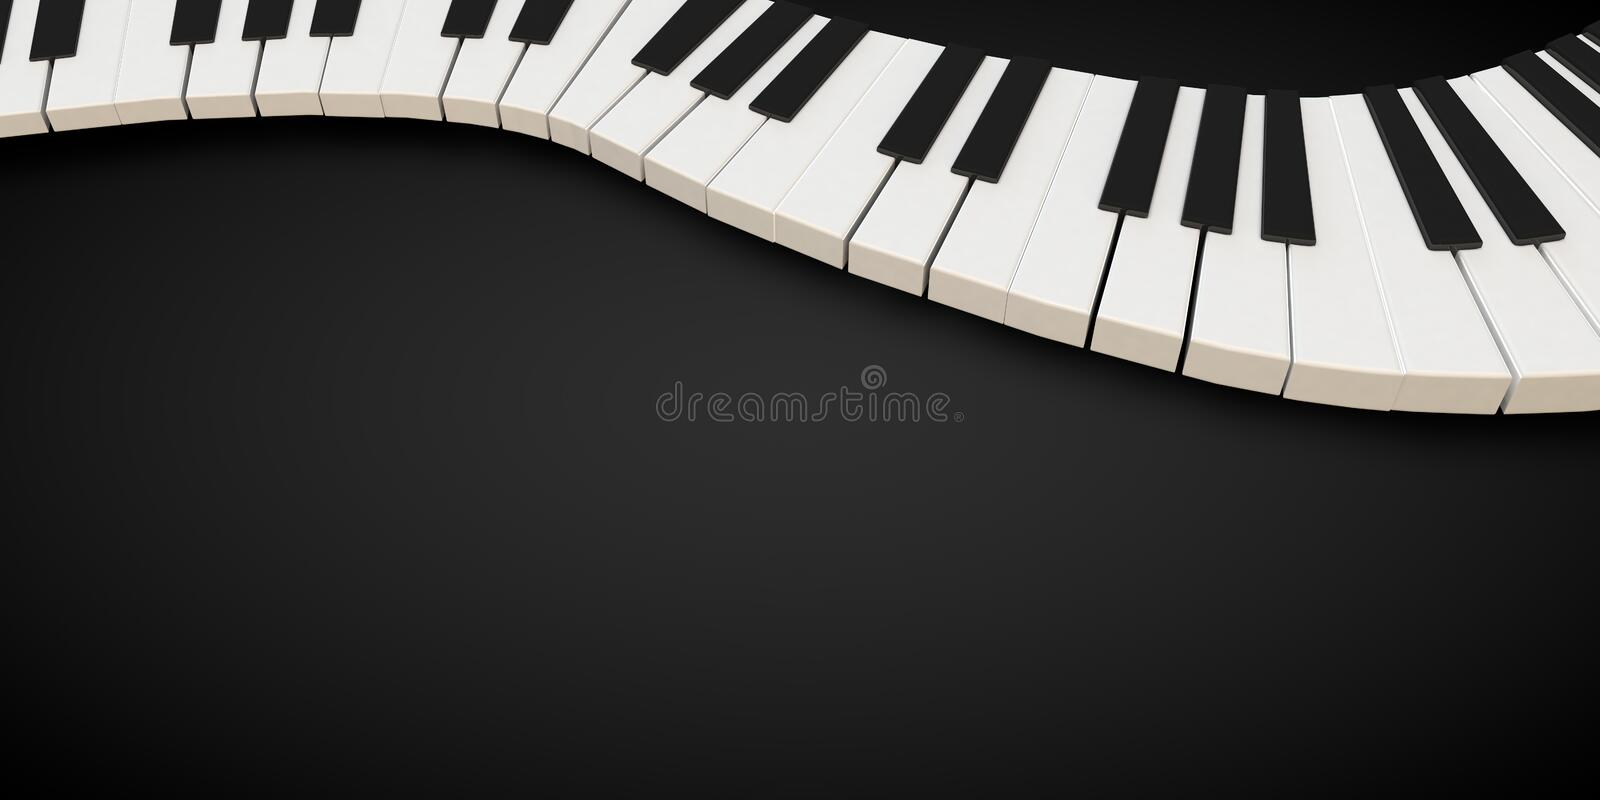 Download 3d Render Of A Piano Keyboard In A Fluid Wavelike Movement Stock Illustration - Illustration: 89145850